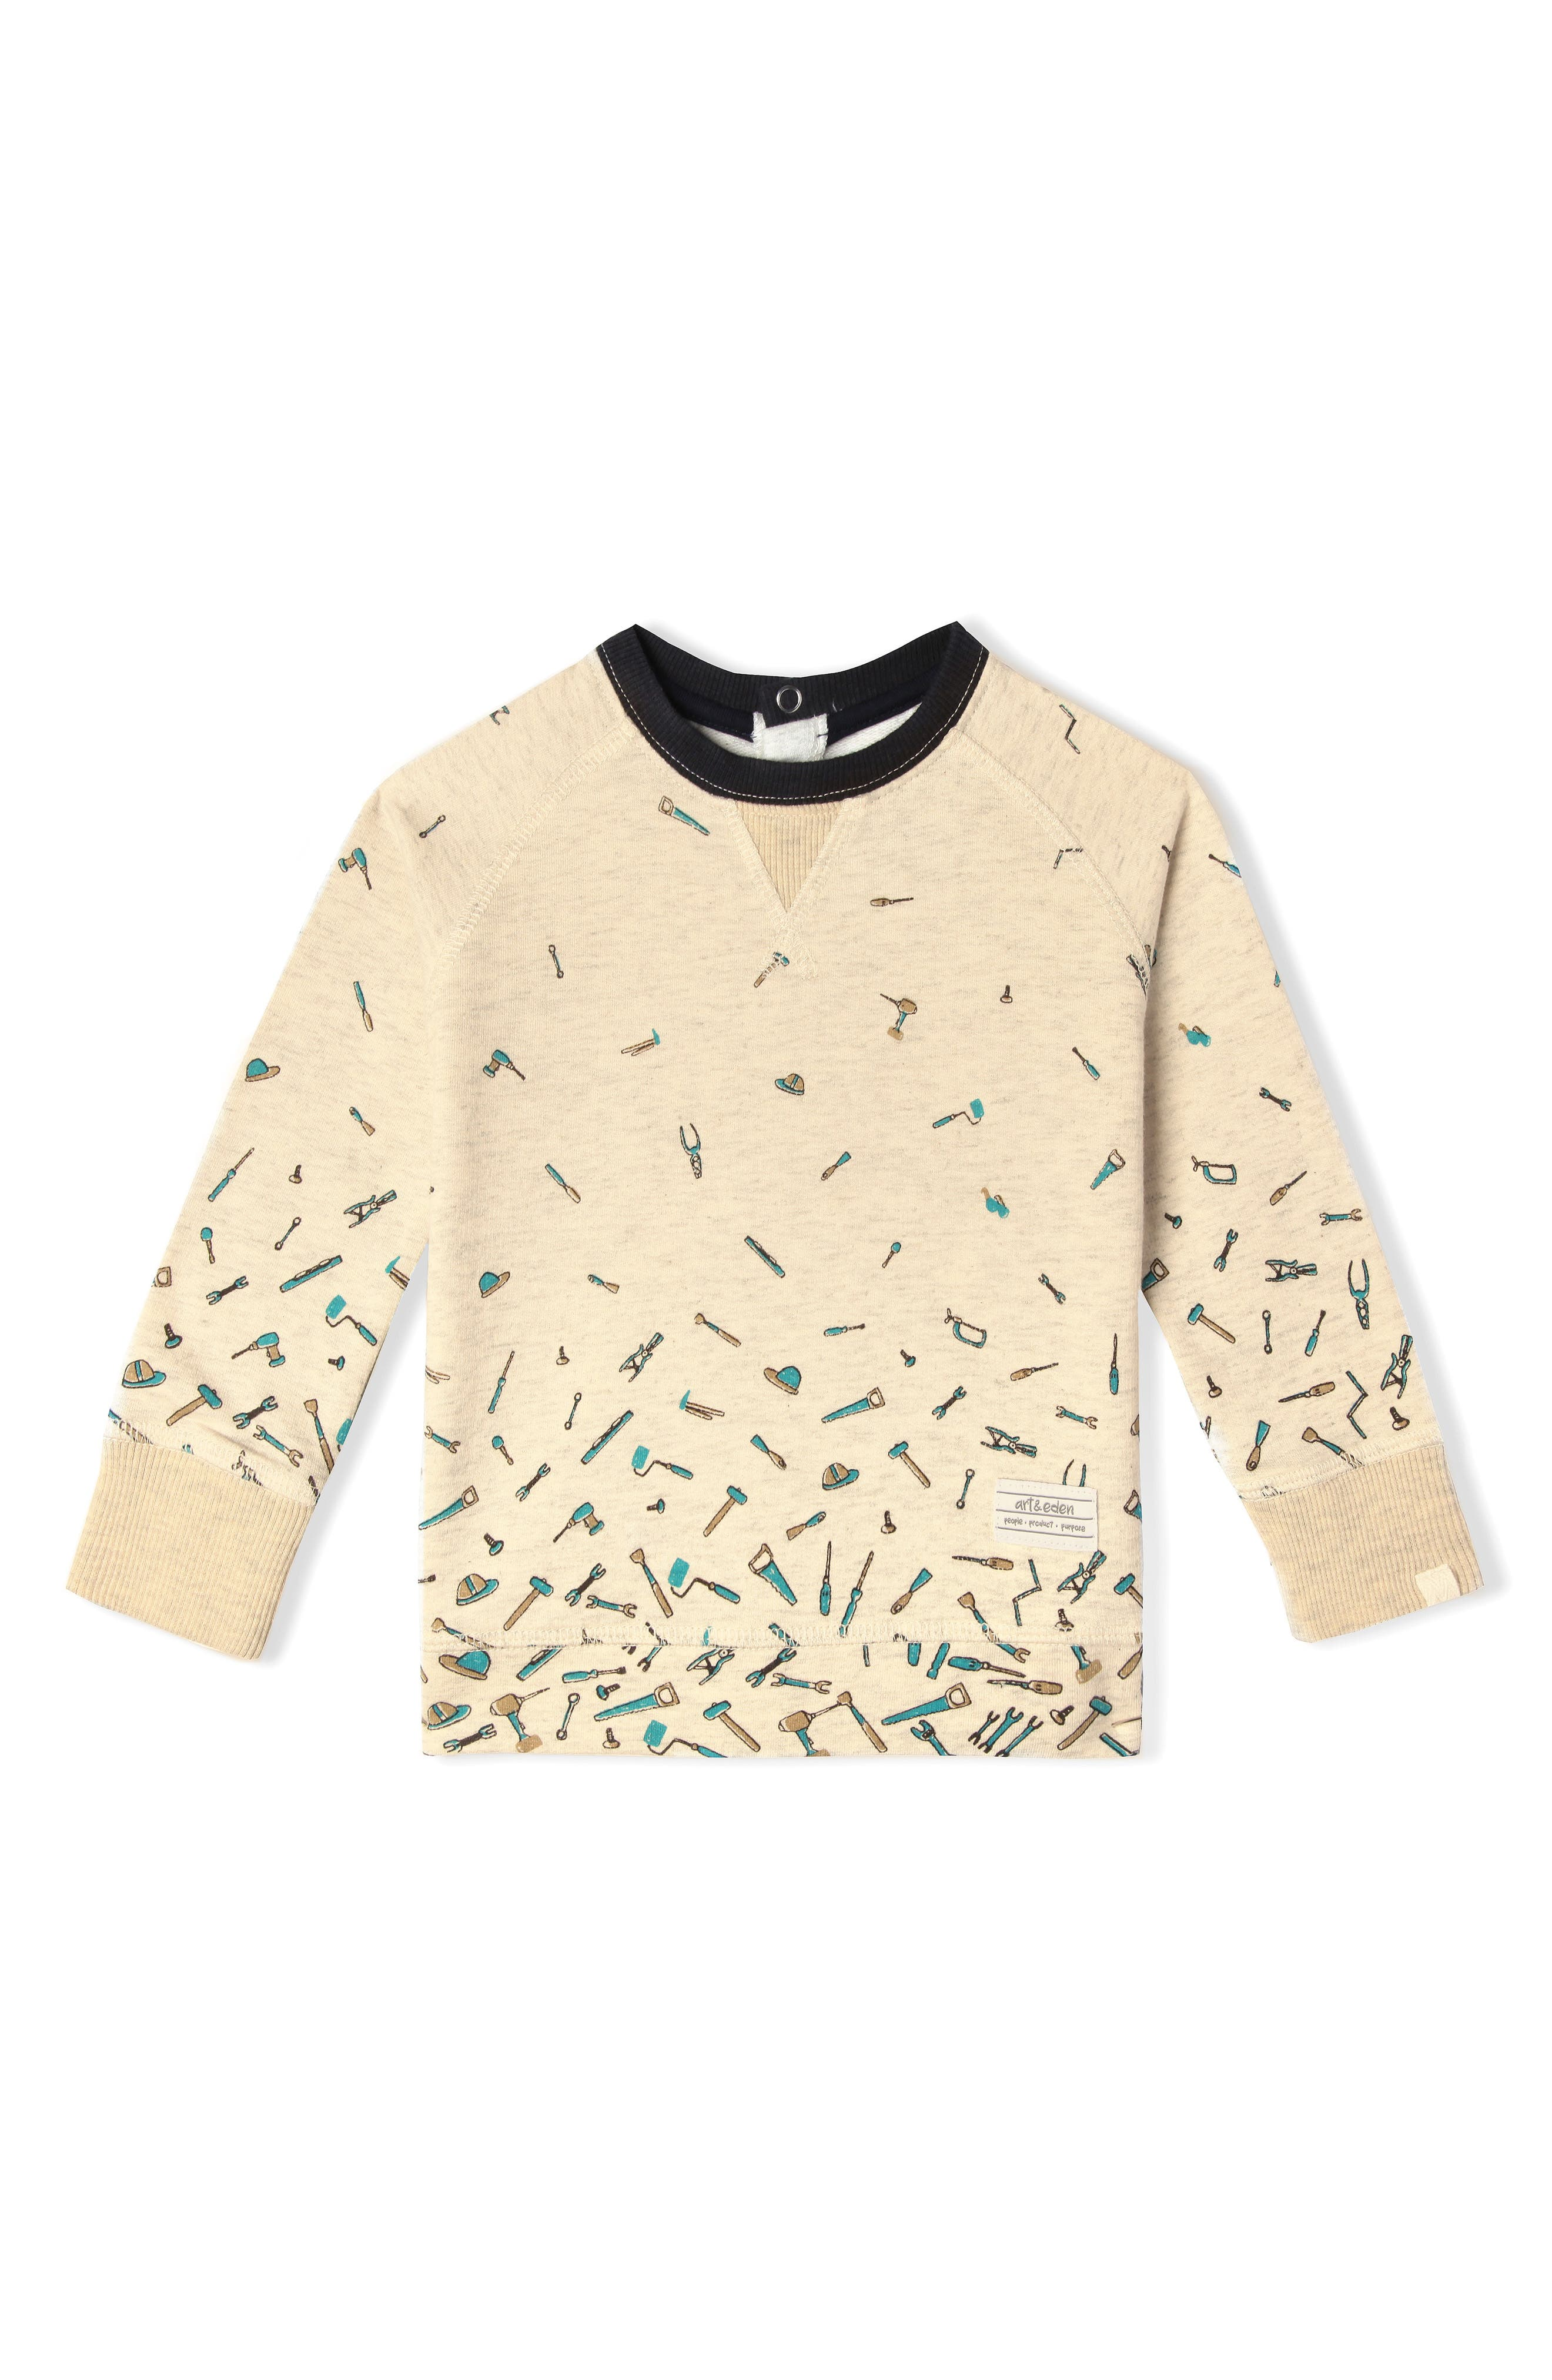 Alternate Image 1 Selected - Art & Eden Mini Samuel Organic Cotton Sweatshirt (Baby Boys)